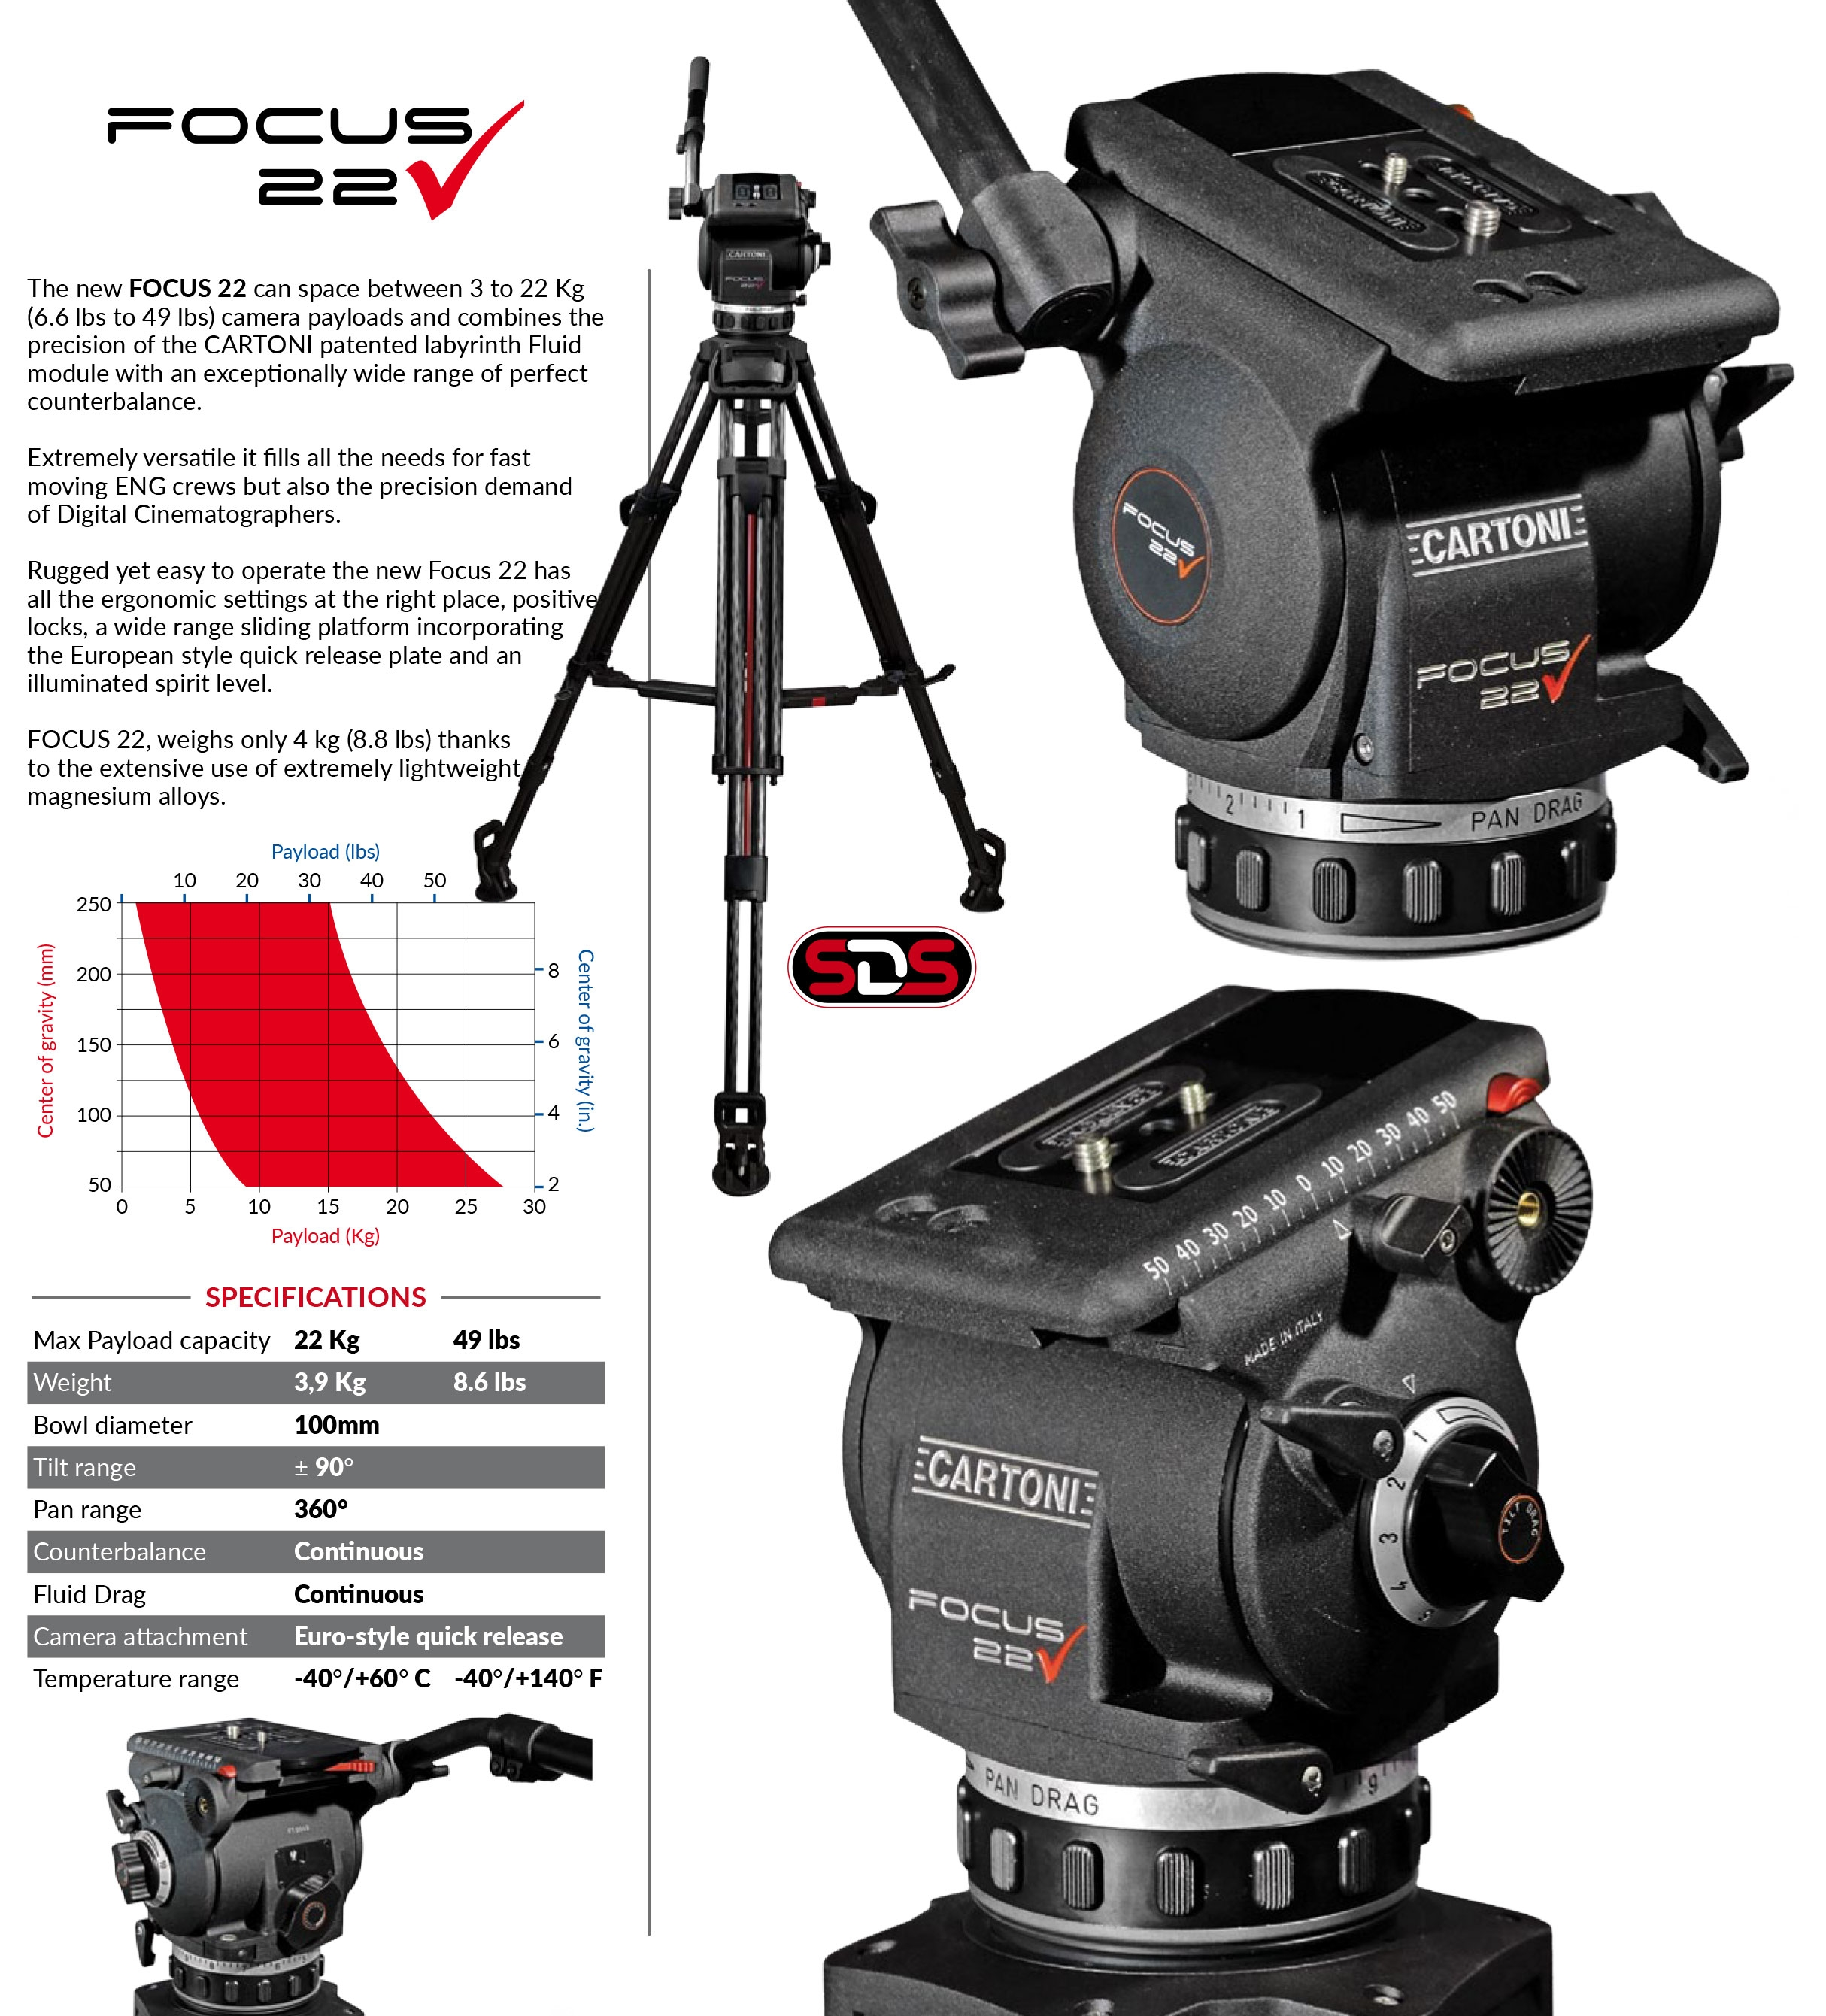 focus 22 overview